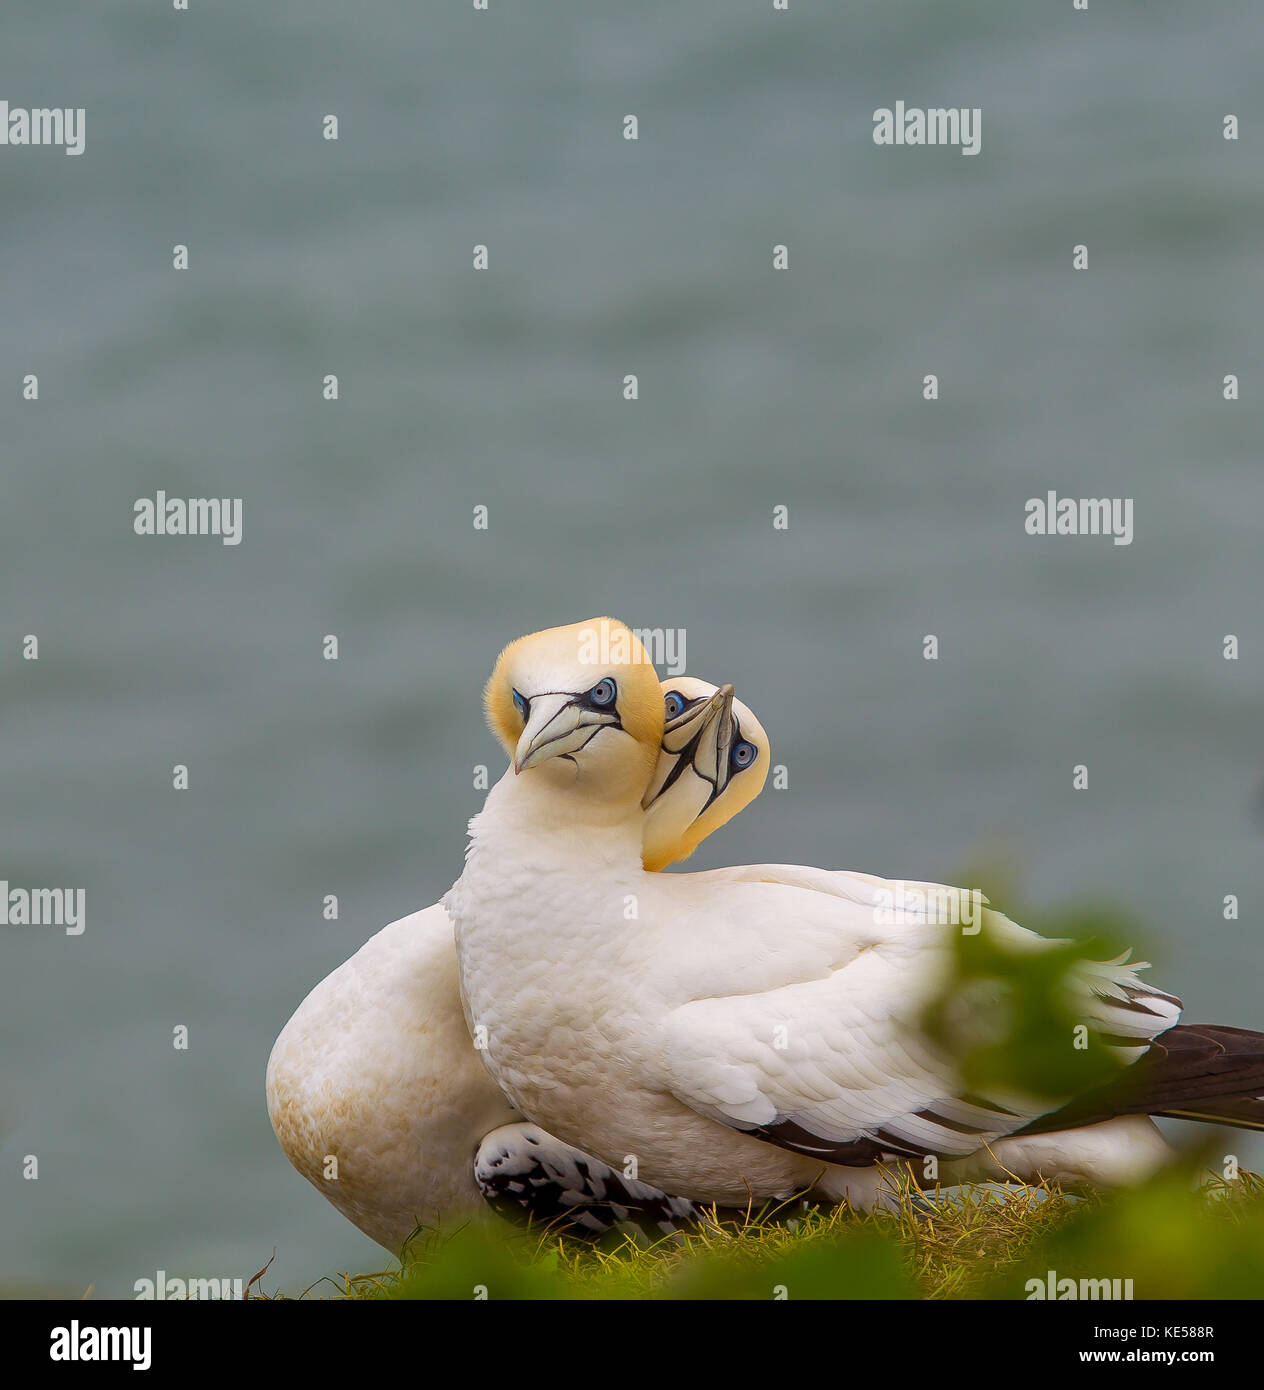 Detailed close up, nesting pair of gannets (Moranus bassanus) on cliff edge, necks entwined, RSPB Bempton Cliffs, - Stock Image